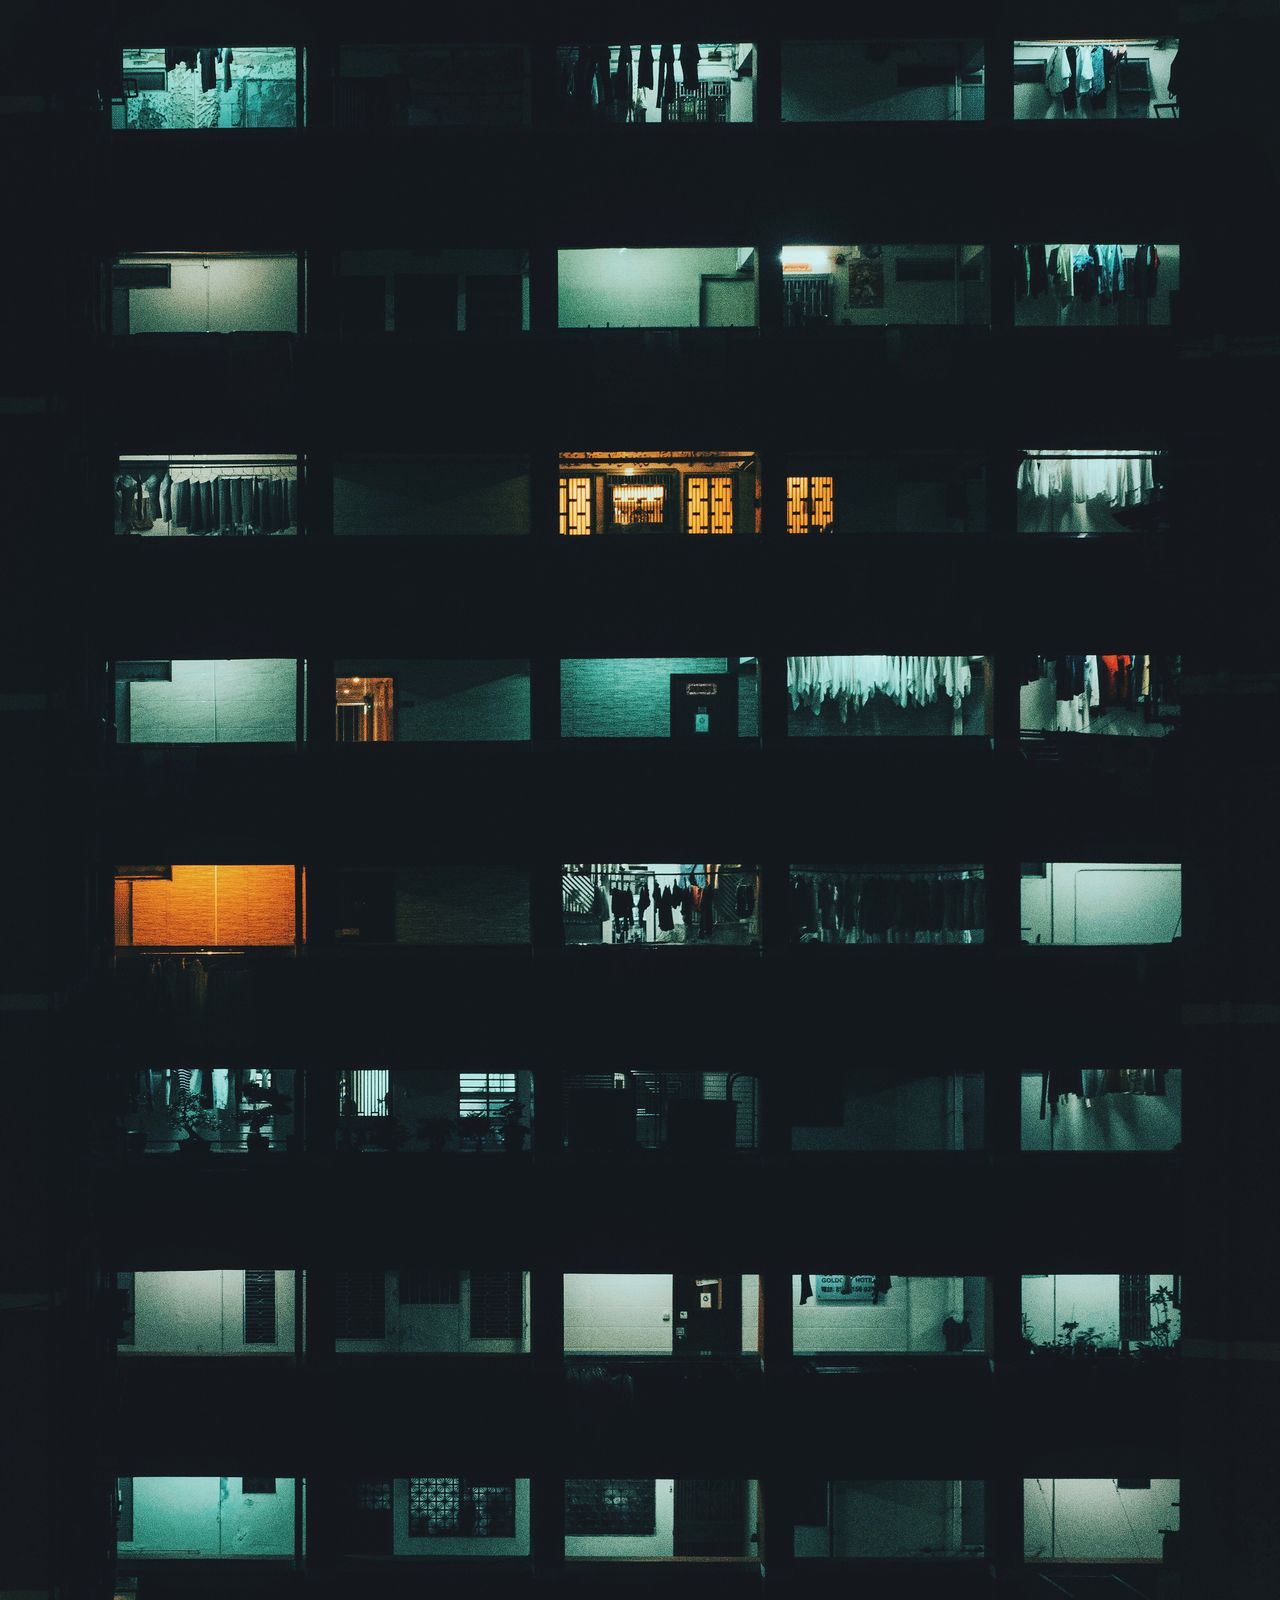 City living EyeEmBestPics EyeEm Best Shots Embrace Urban Life VSCO The Week On EyeEm Minimalist Architecture